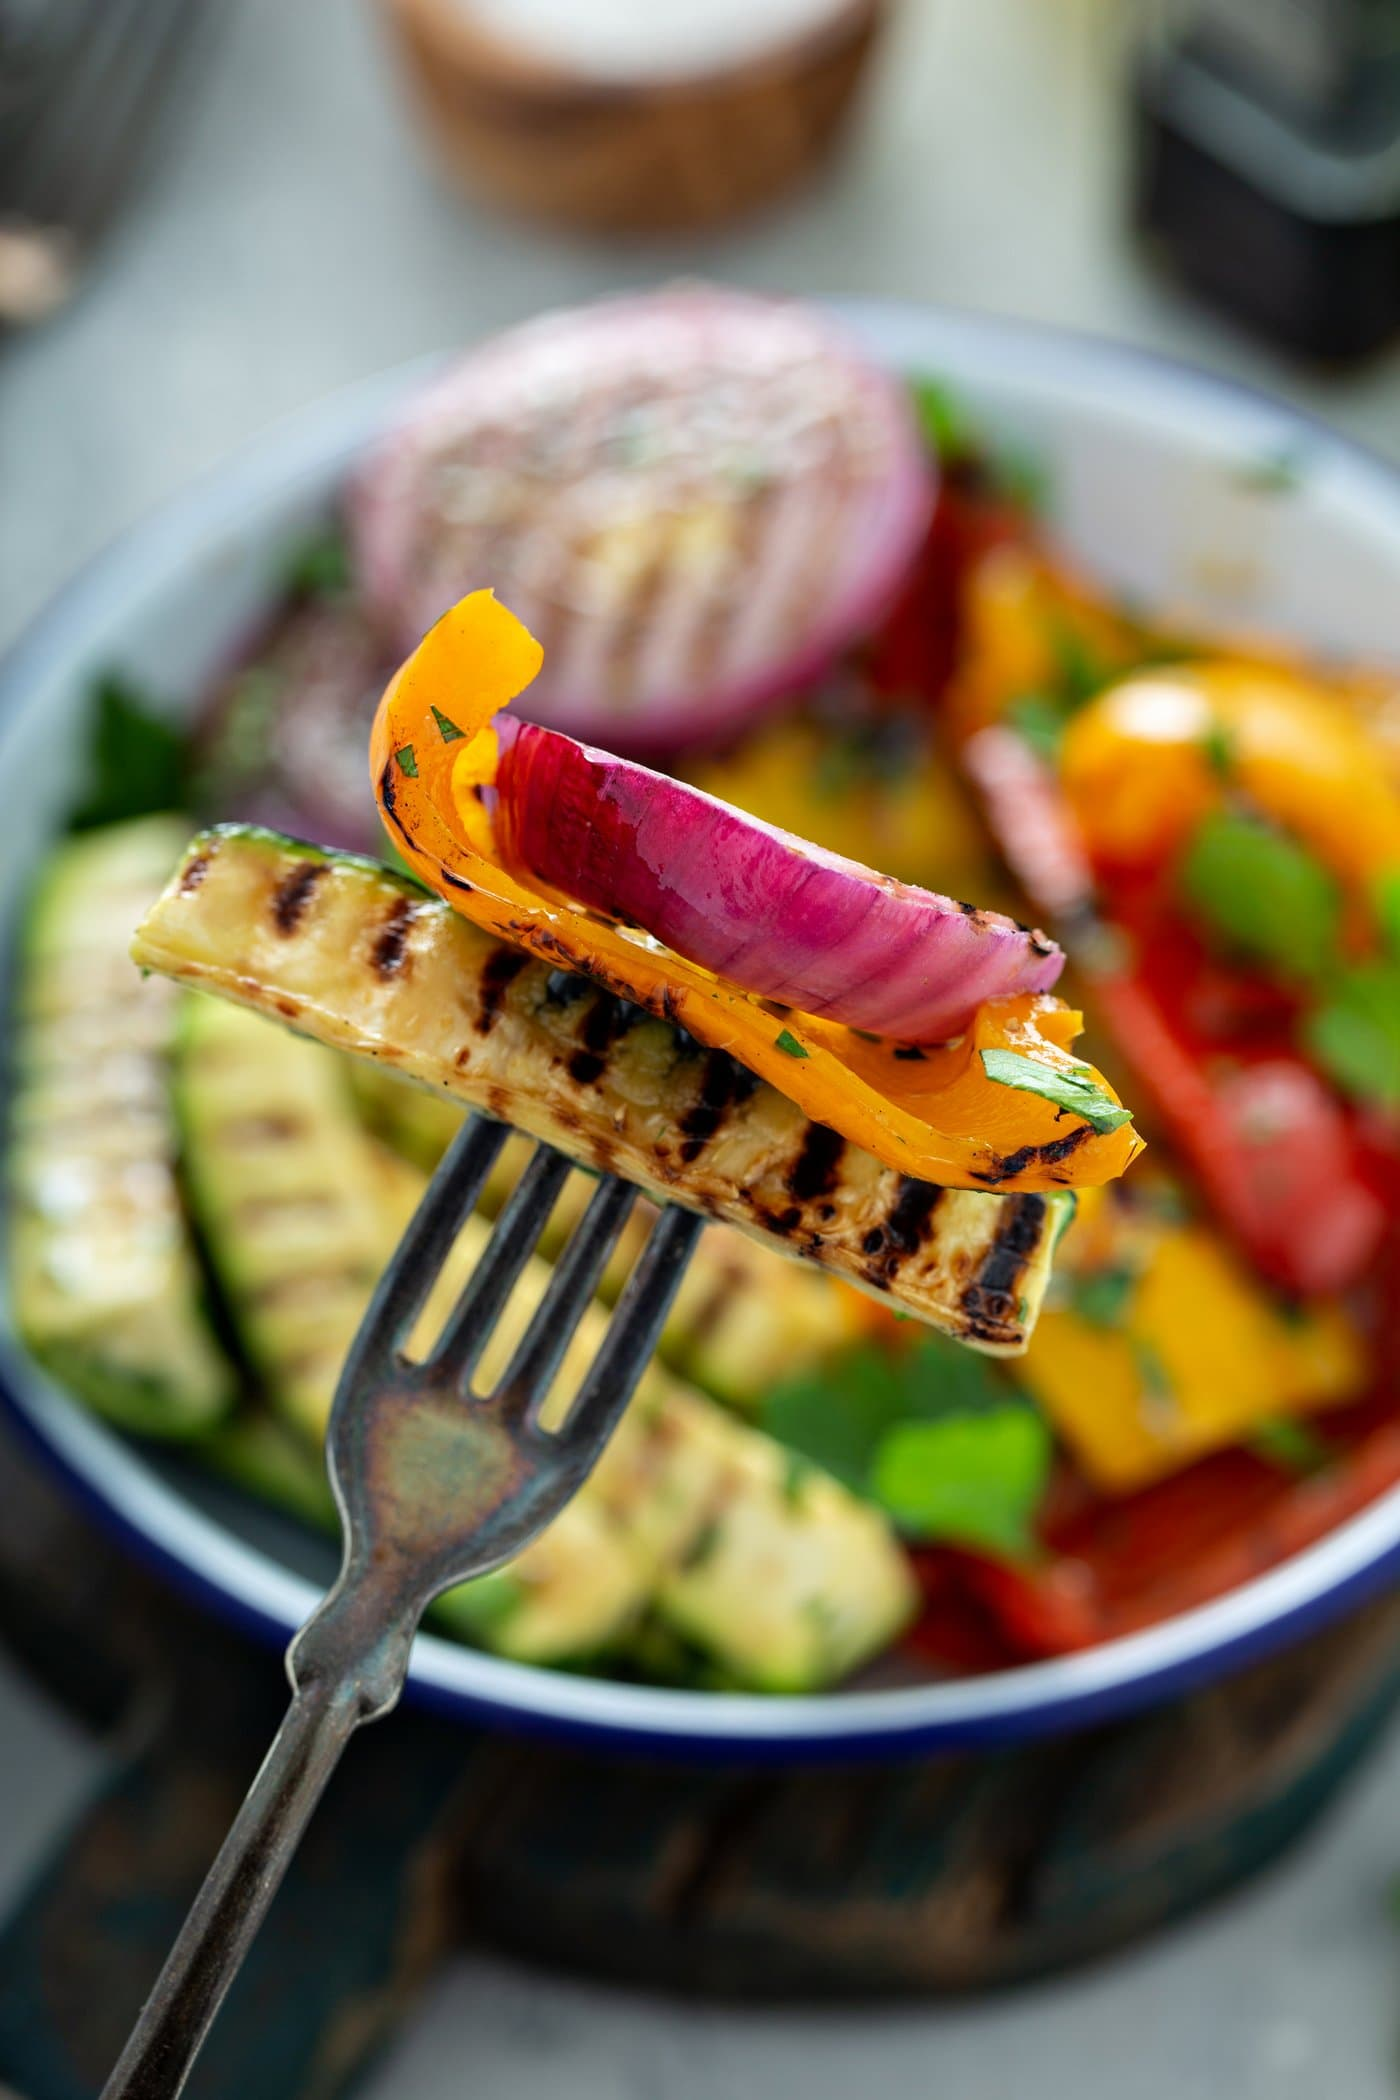 Grilled zucchini, yellow bell pepper, and red onion pierced with a fork. A serving dish of grilled veggies is in the background.